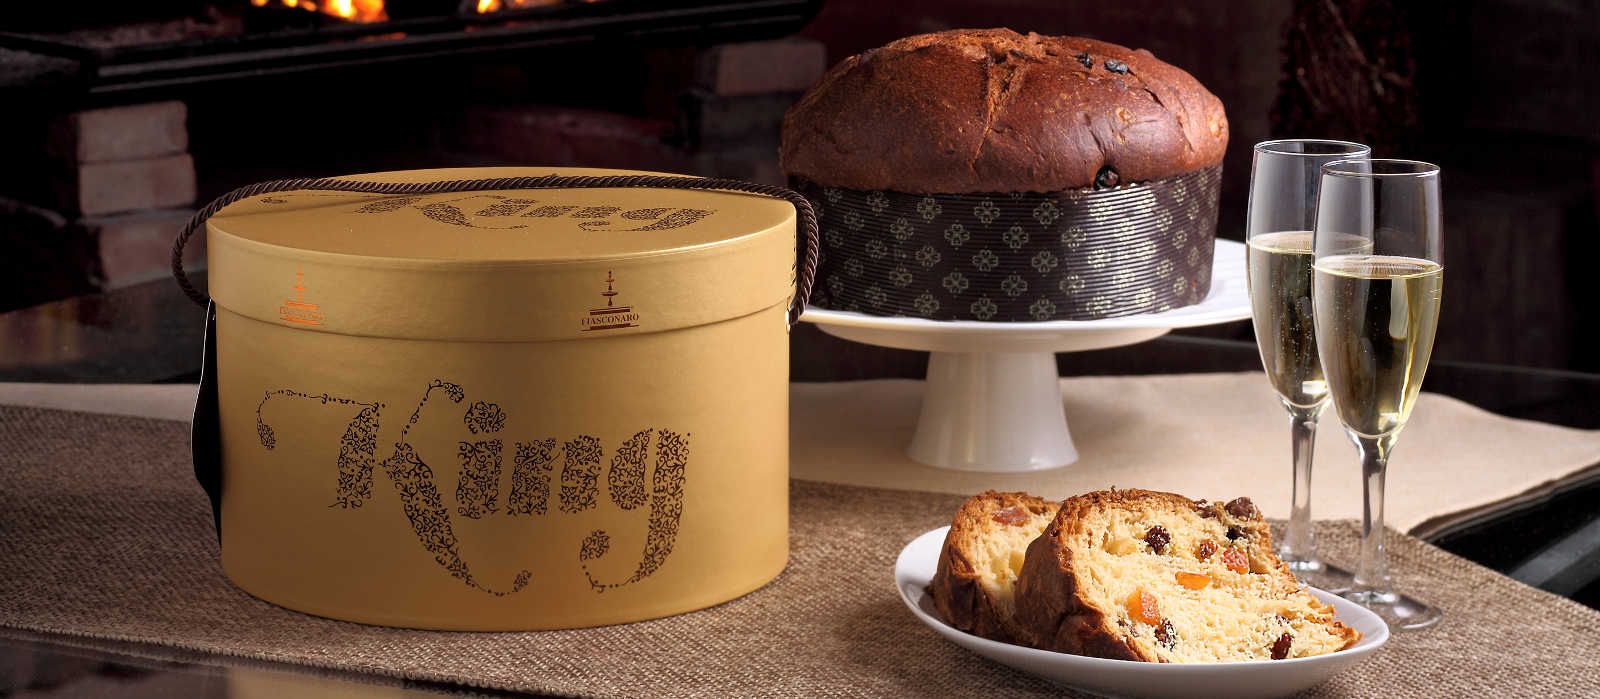 Panettone Fiasconaro King